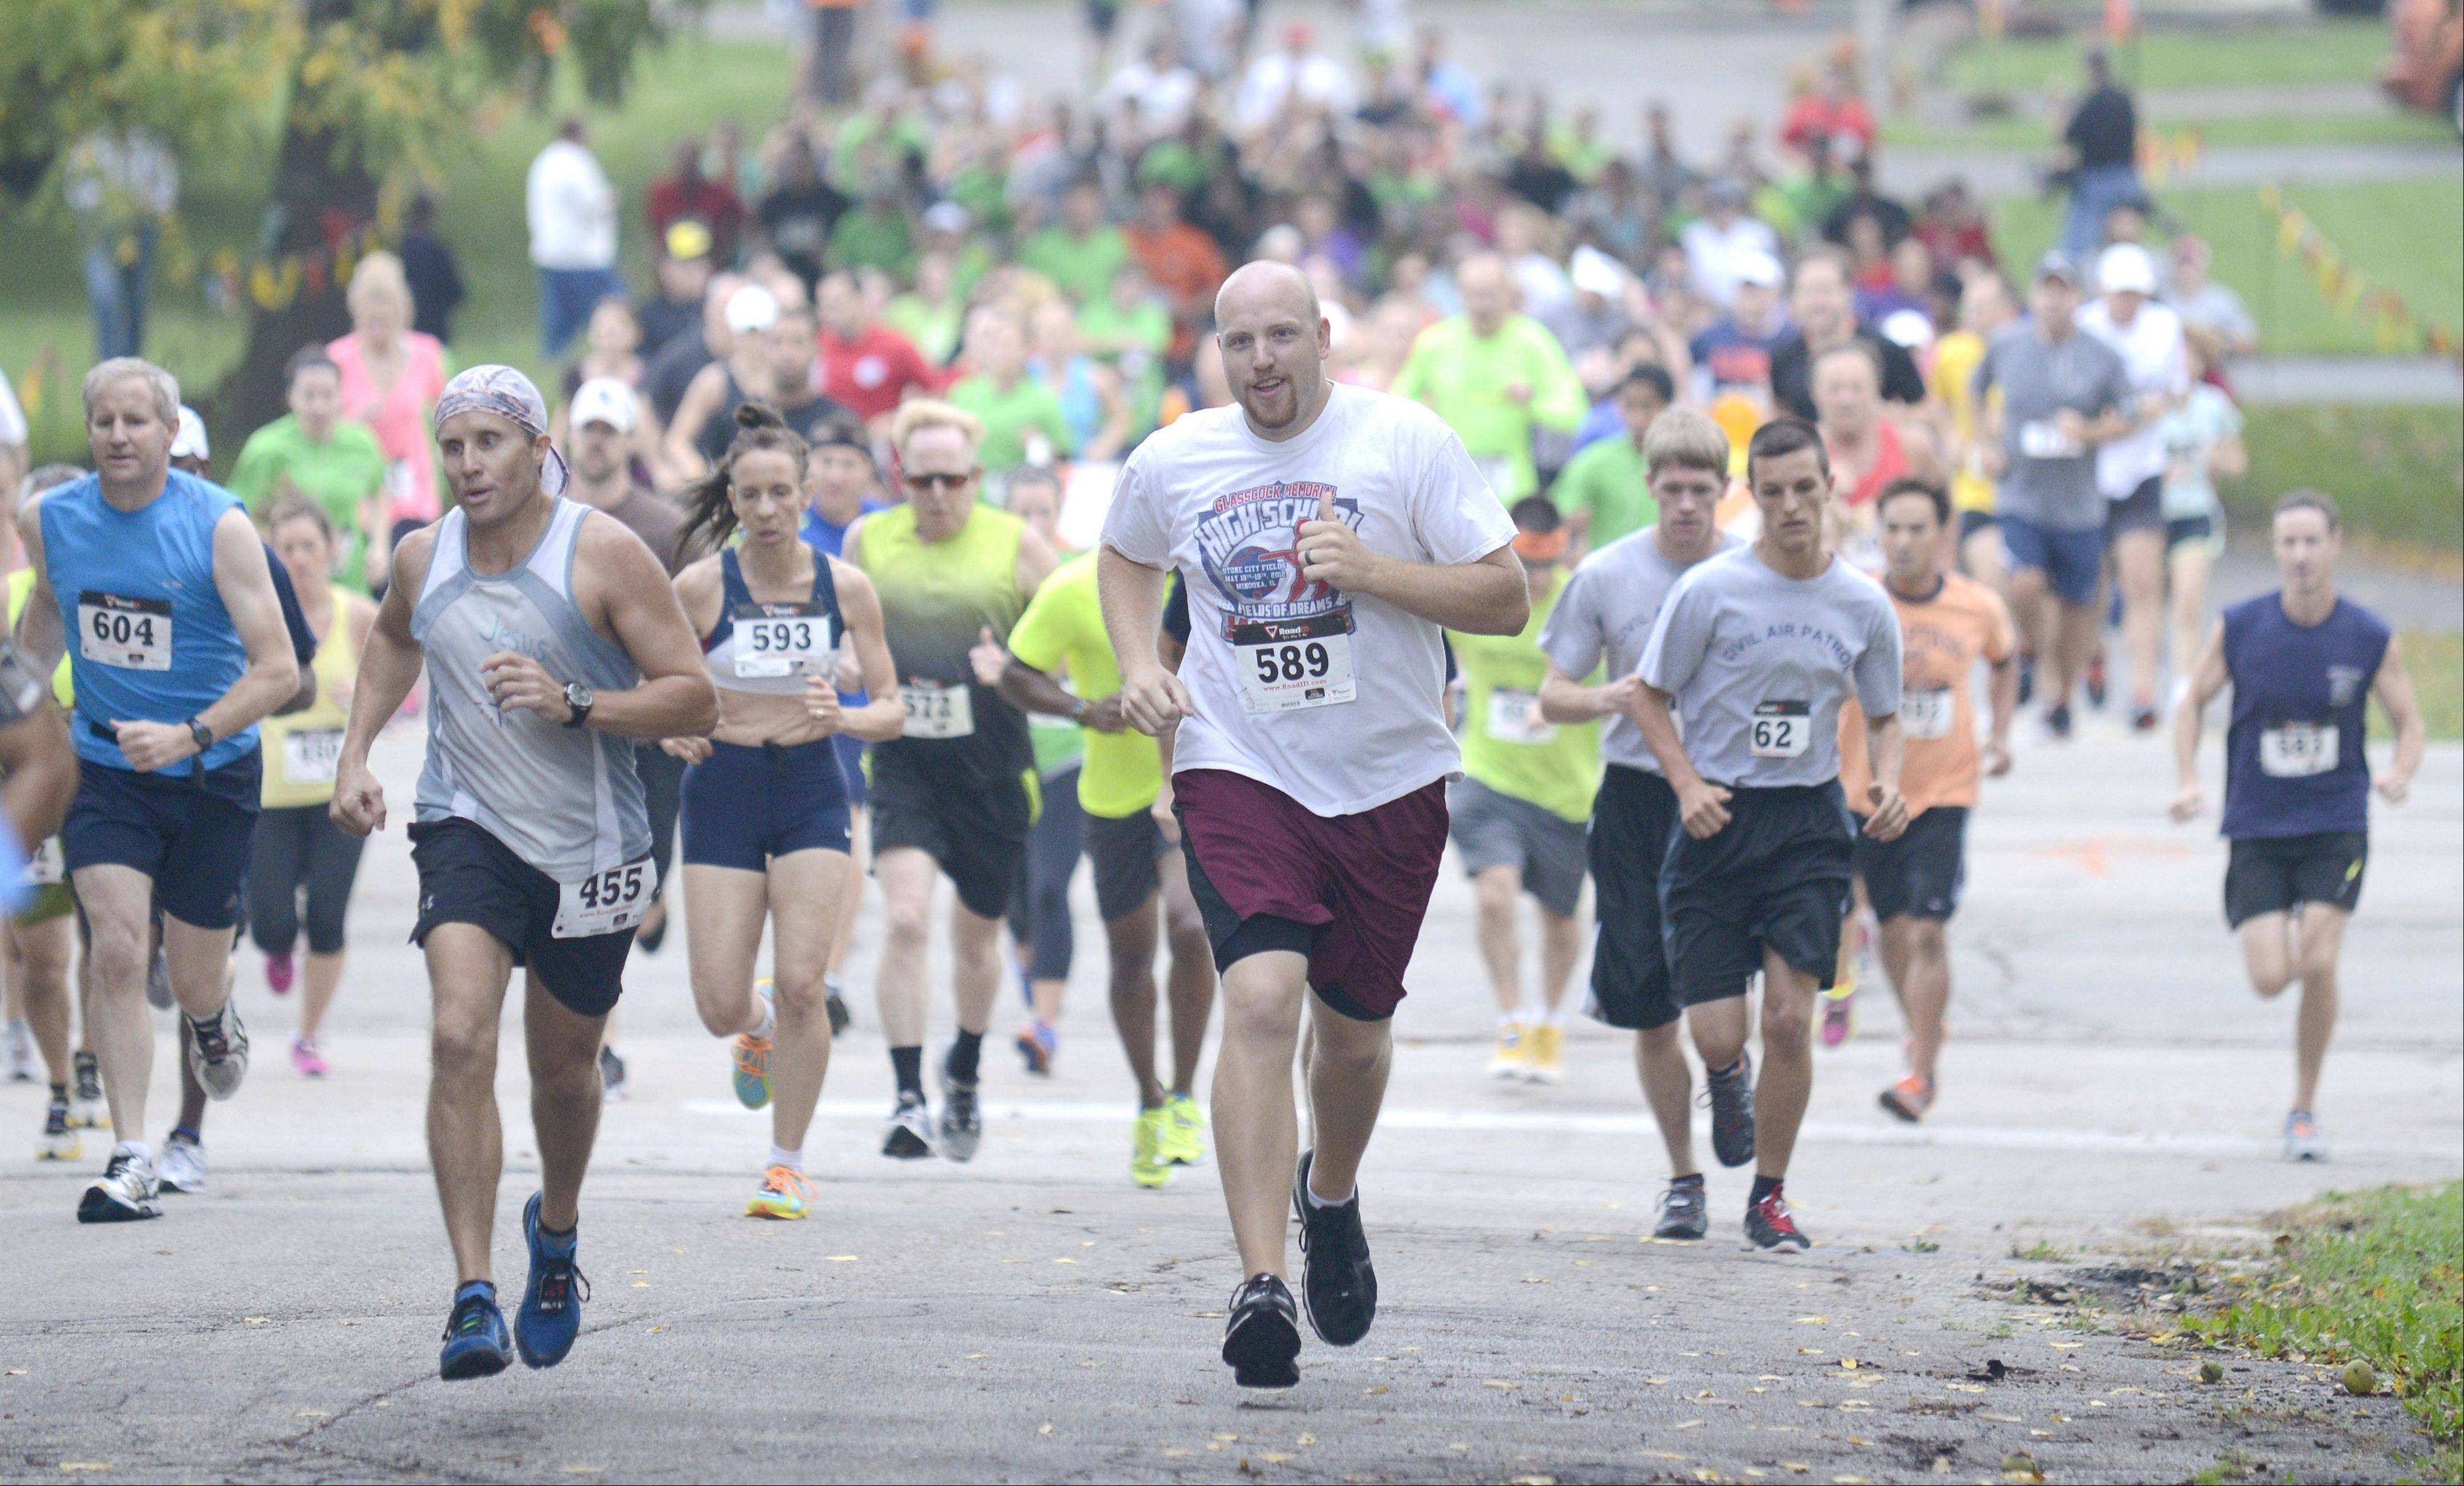 Runners take off in South Elgin Parks & Recreation FUNdation's ninth annual Harvest Hustle 7K Run and 2-Mile Walk on Saturday.